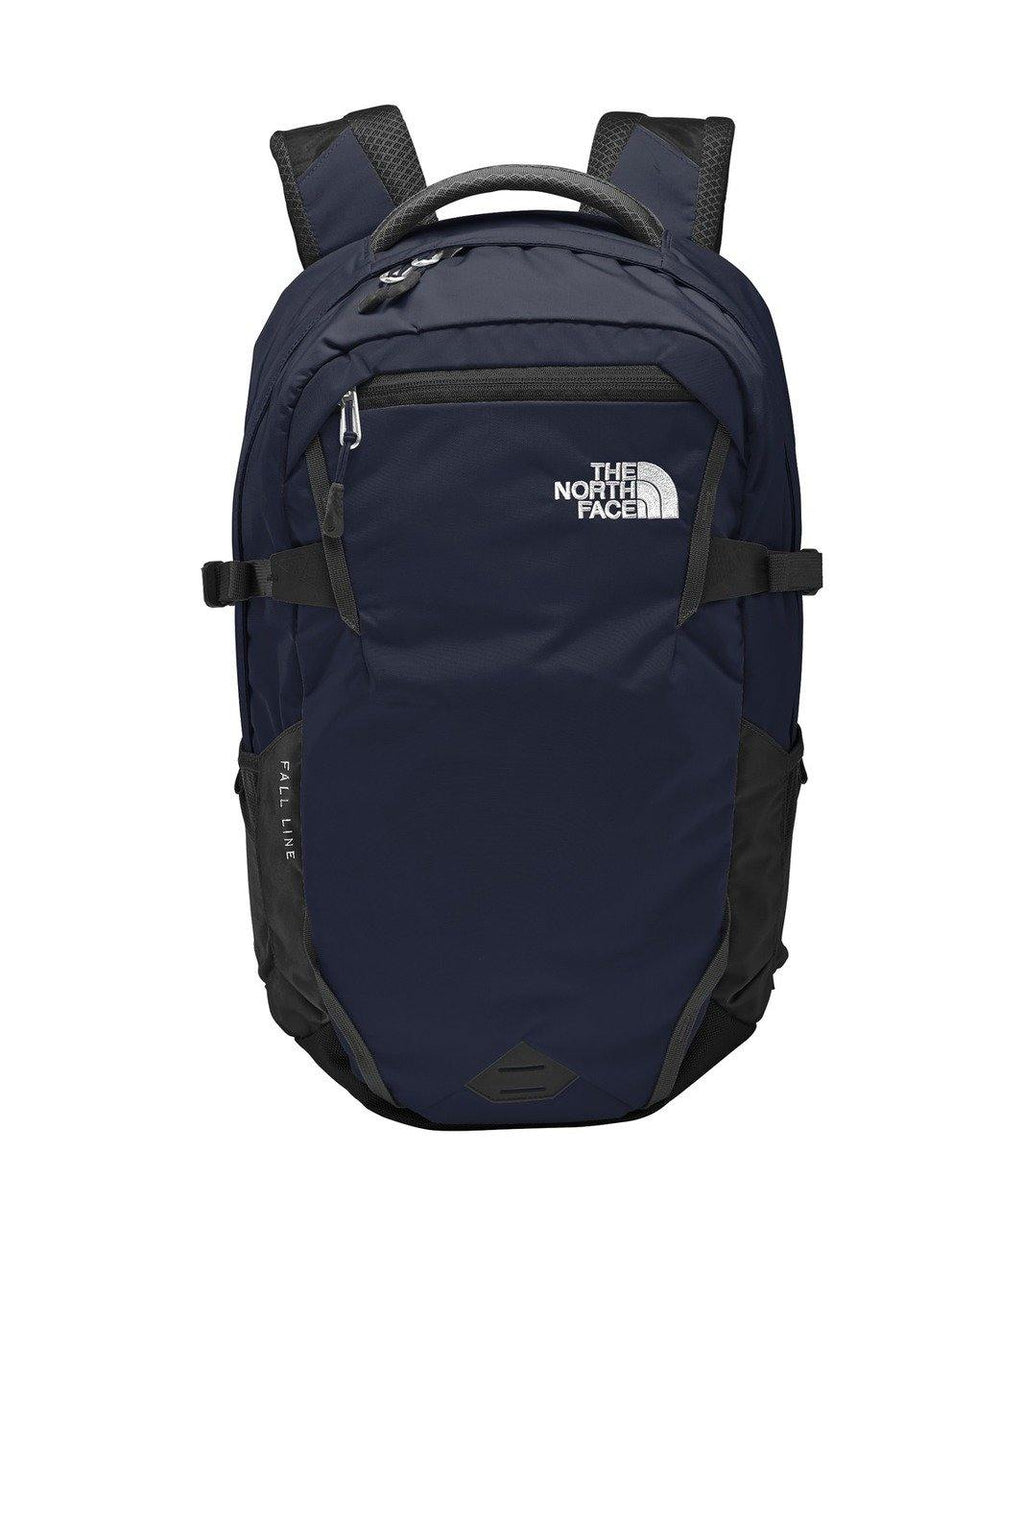 The North Face Fall Line Backpack - New Age Promotions